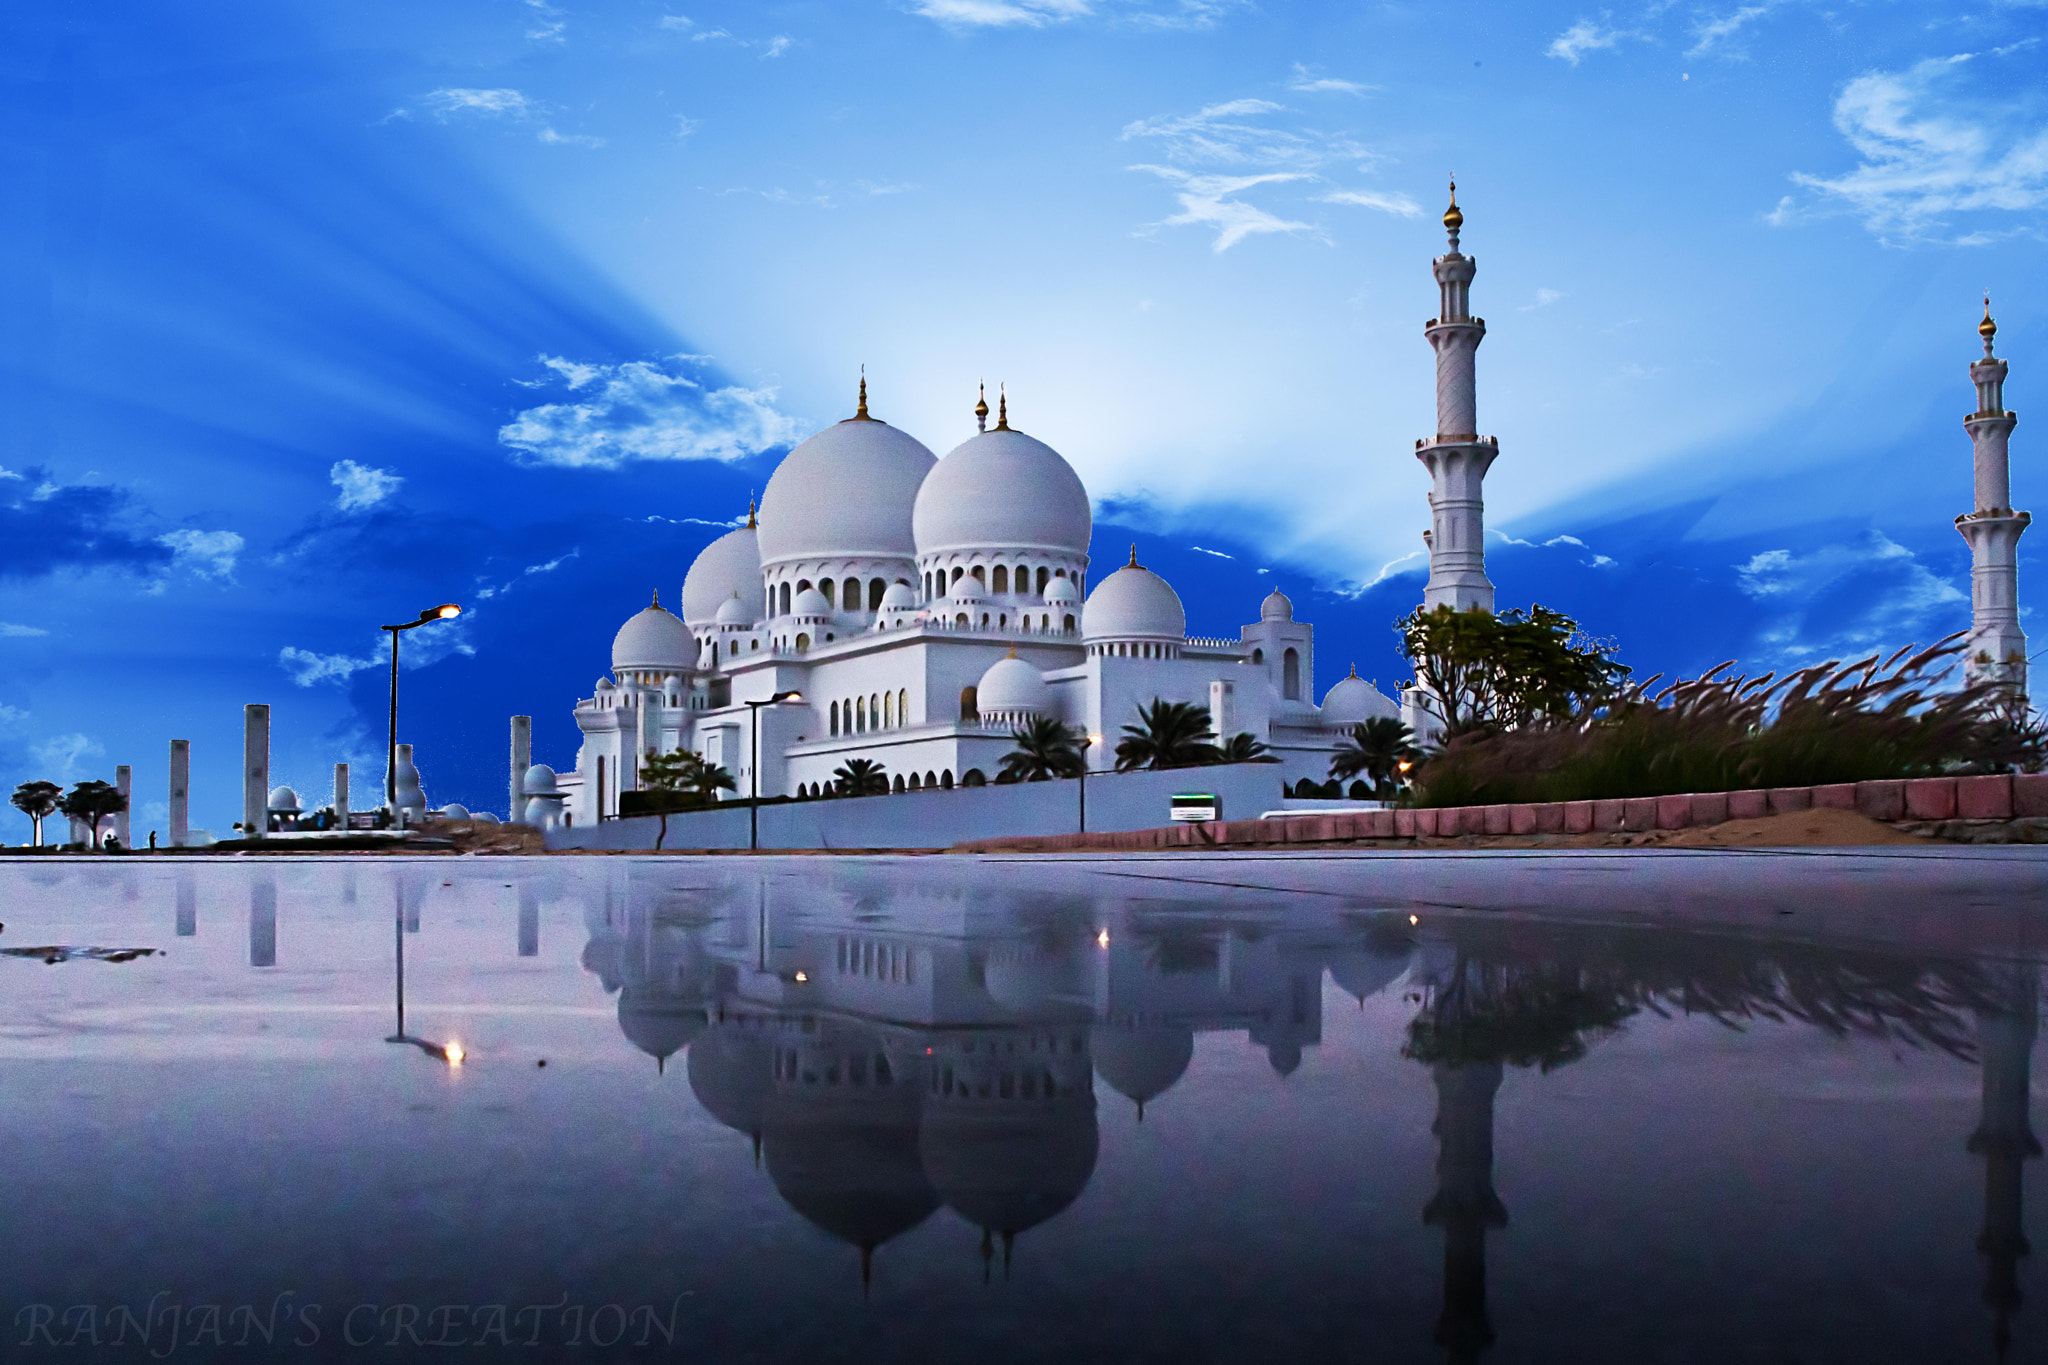 Photograph Grand Mosque Abu Dhabi by RANJAN SM on 500px